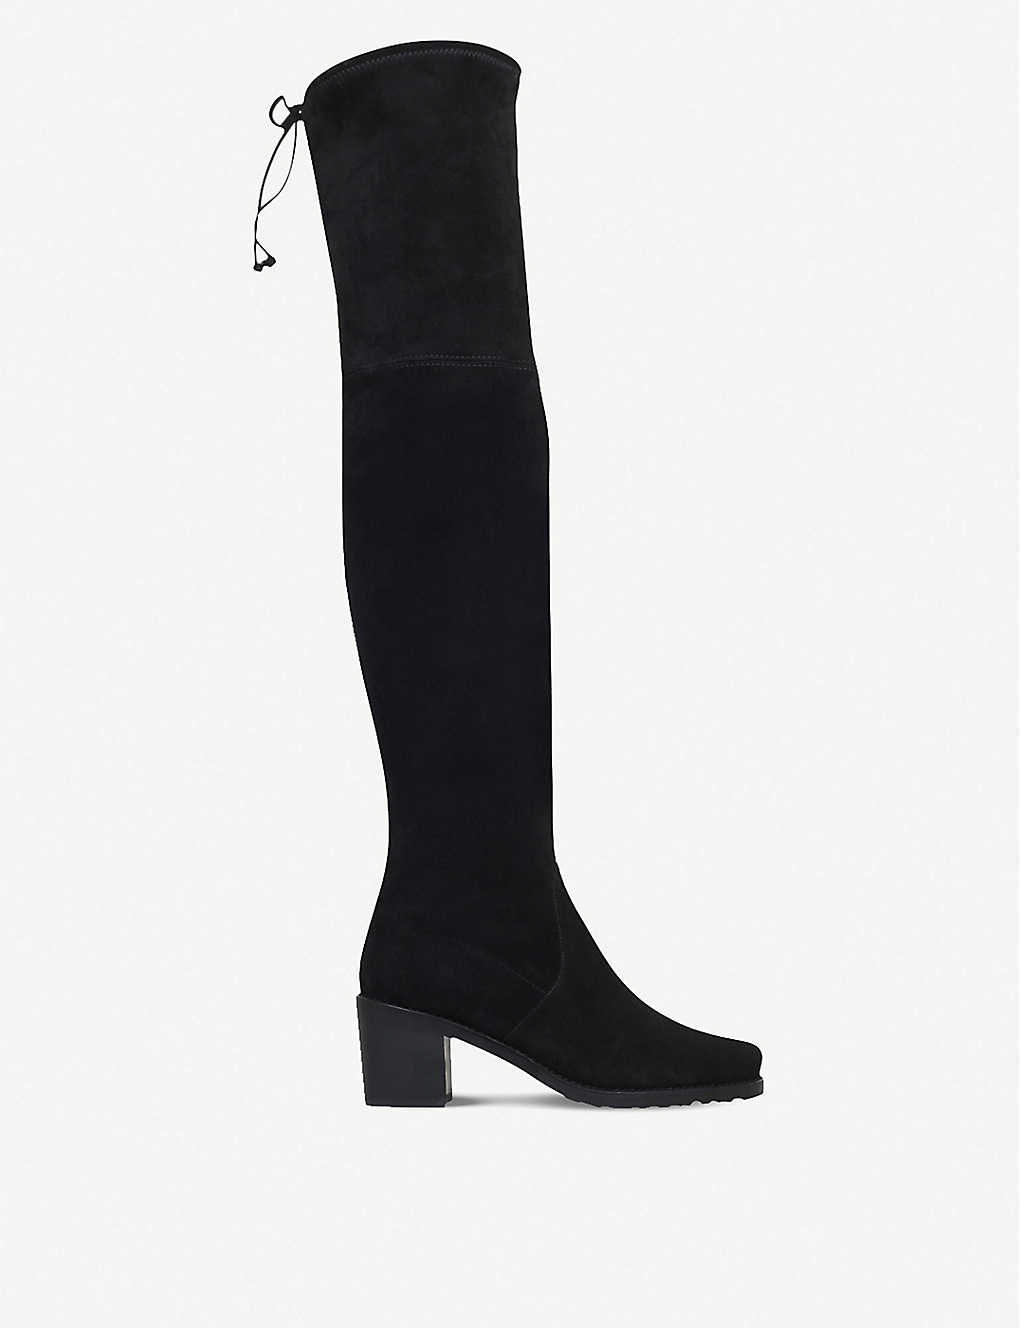 a1a295a0956 STUART WEITZMAN - Urban suede over-the-knee boots